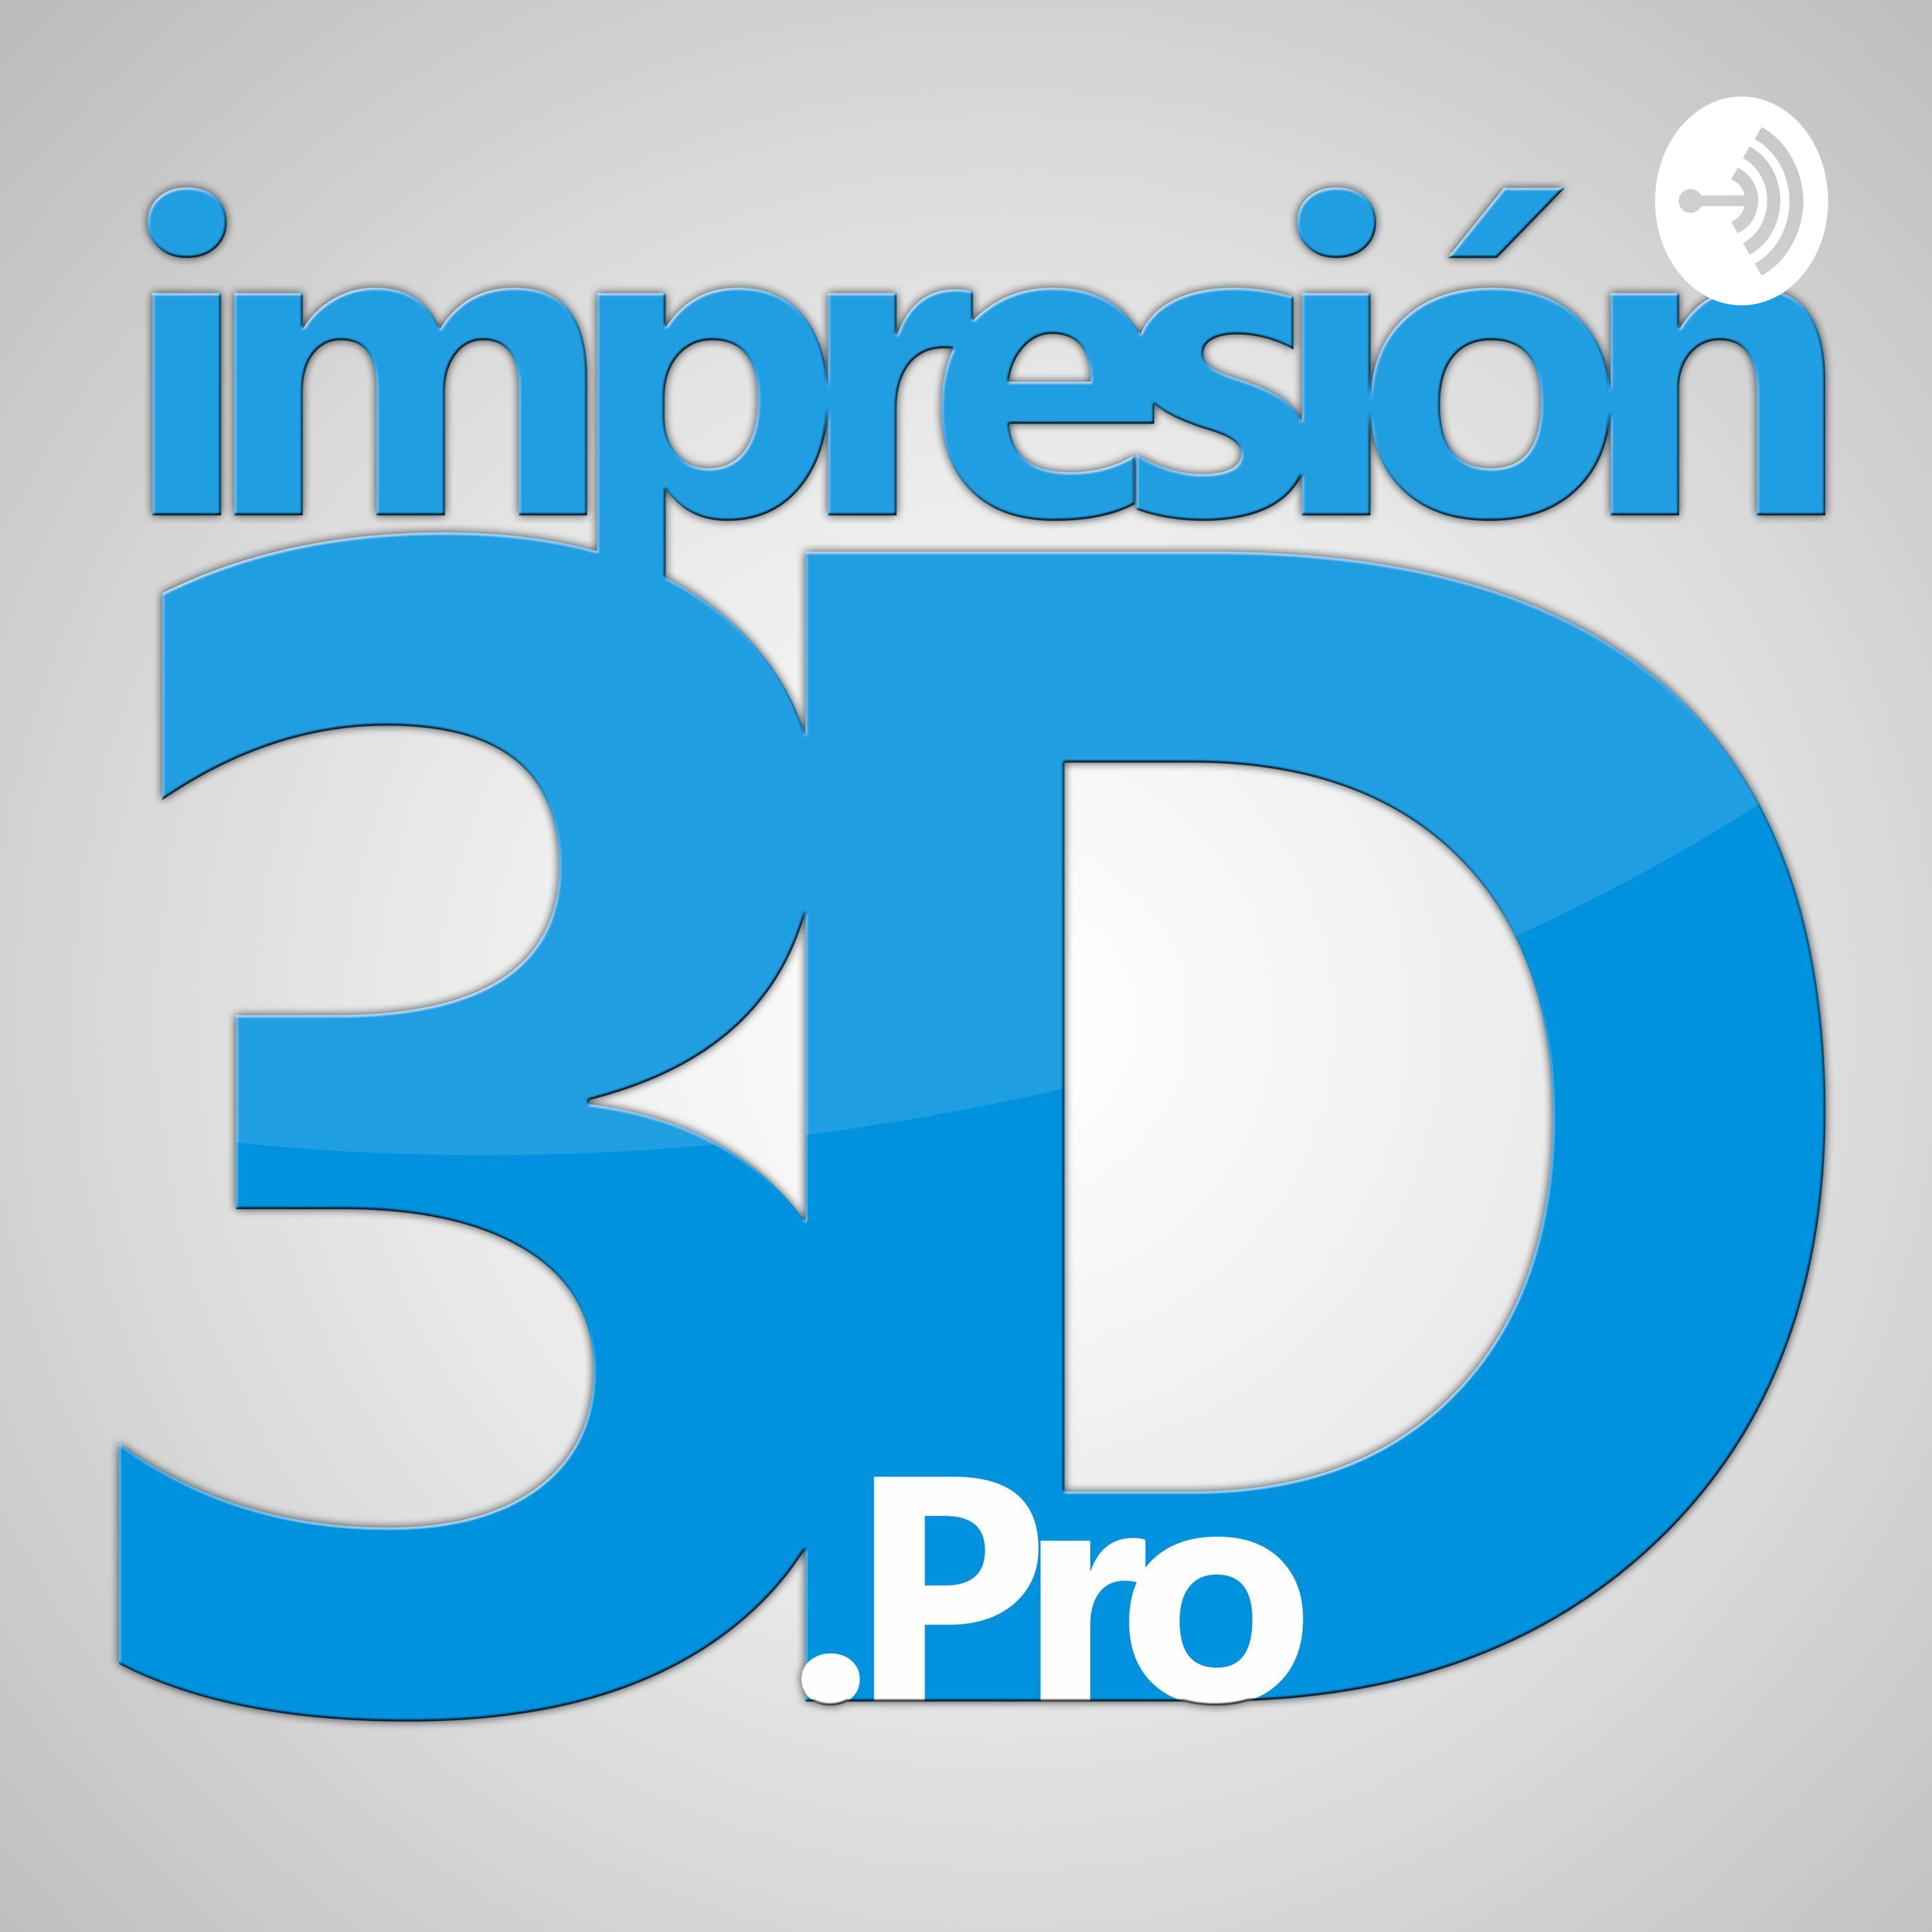 Escaneo 3D con iPad ¿Es posible?